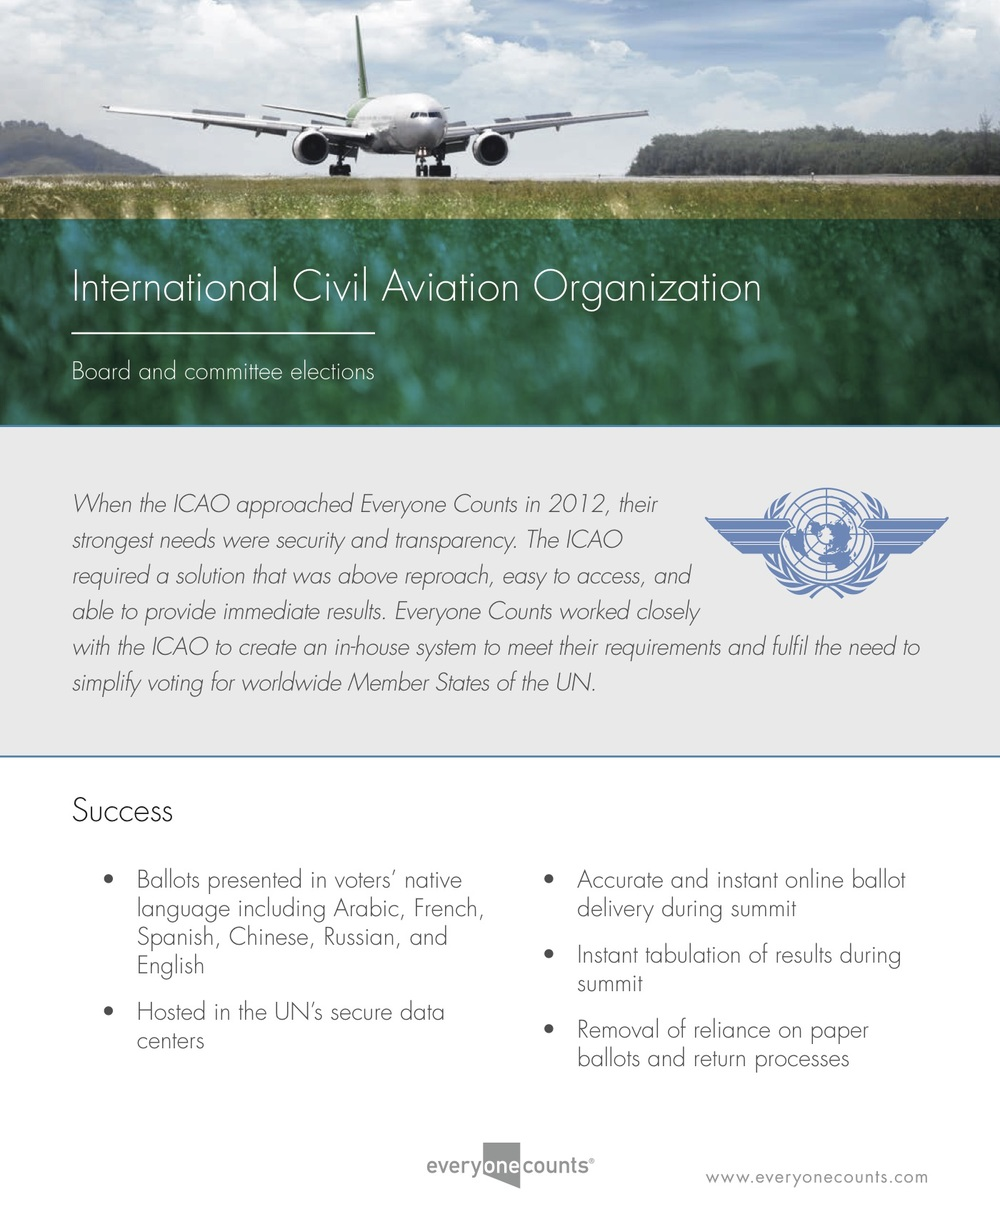 EC-CS-ICA - International Civil Aviation Organization.jpeg